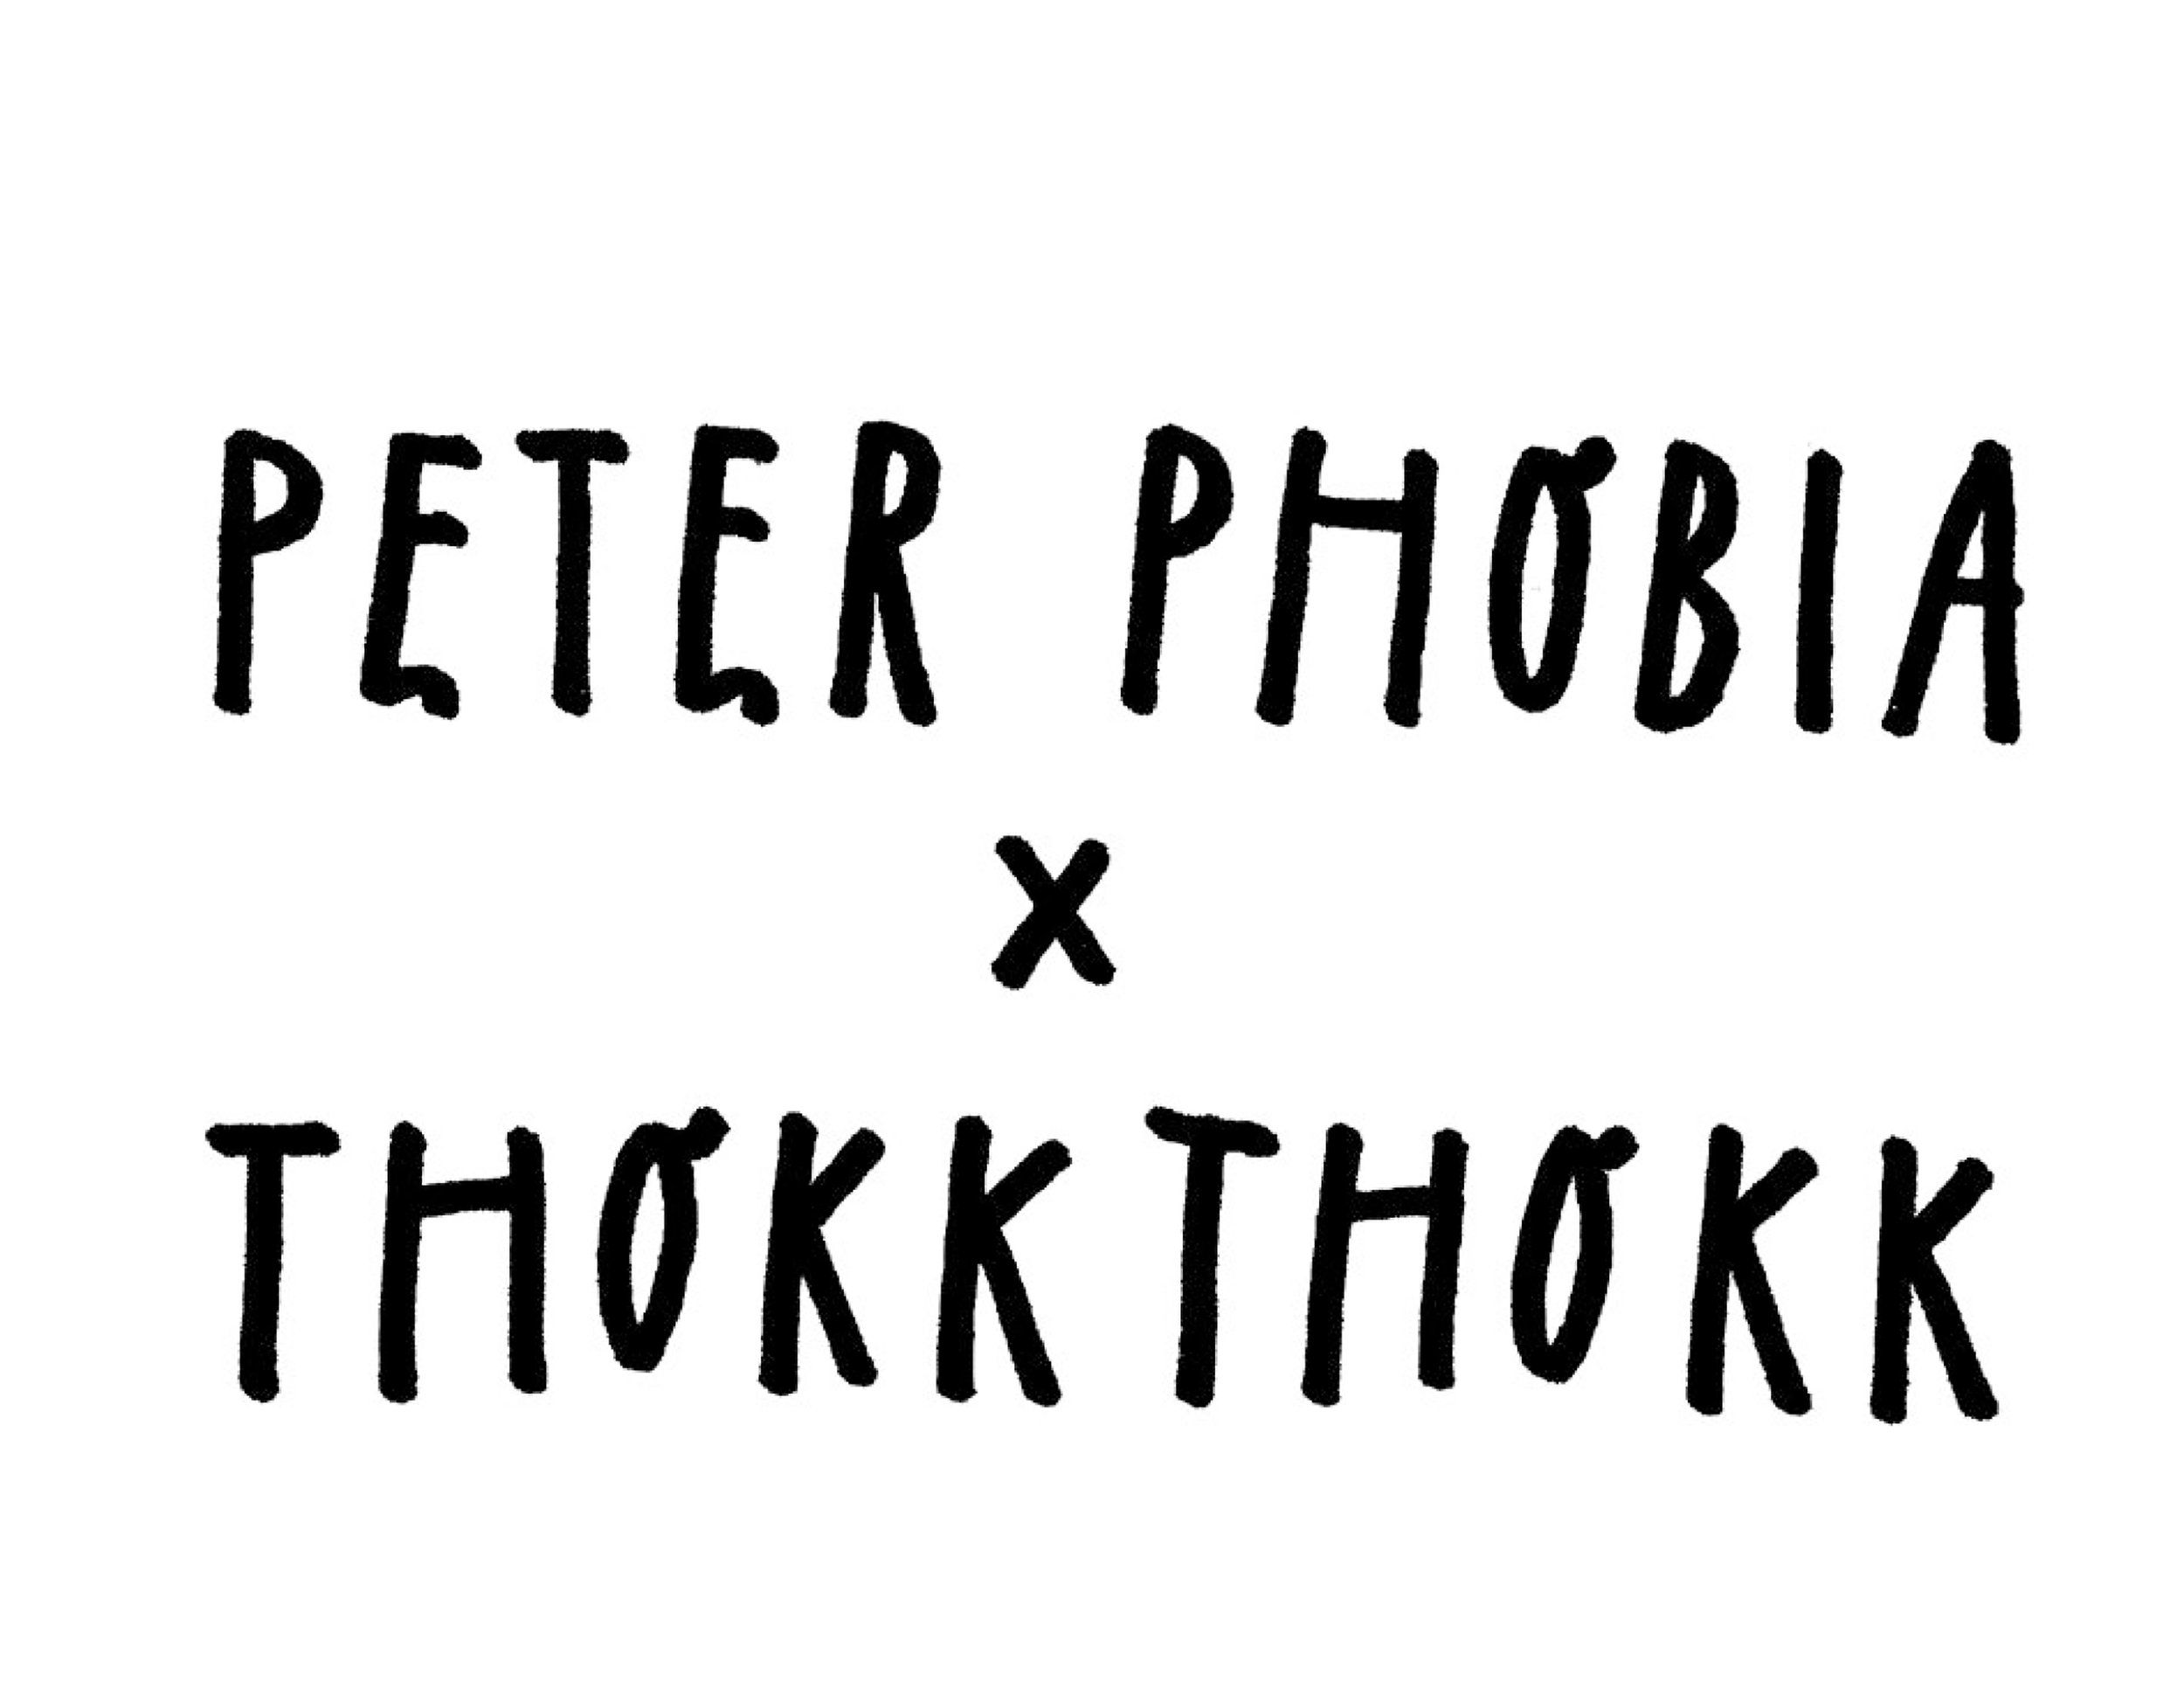 Preview_ThokkThokk_PeterPhobia_2017-1.jpg